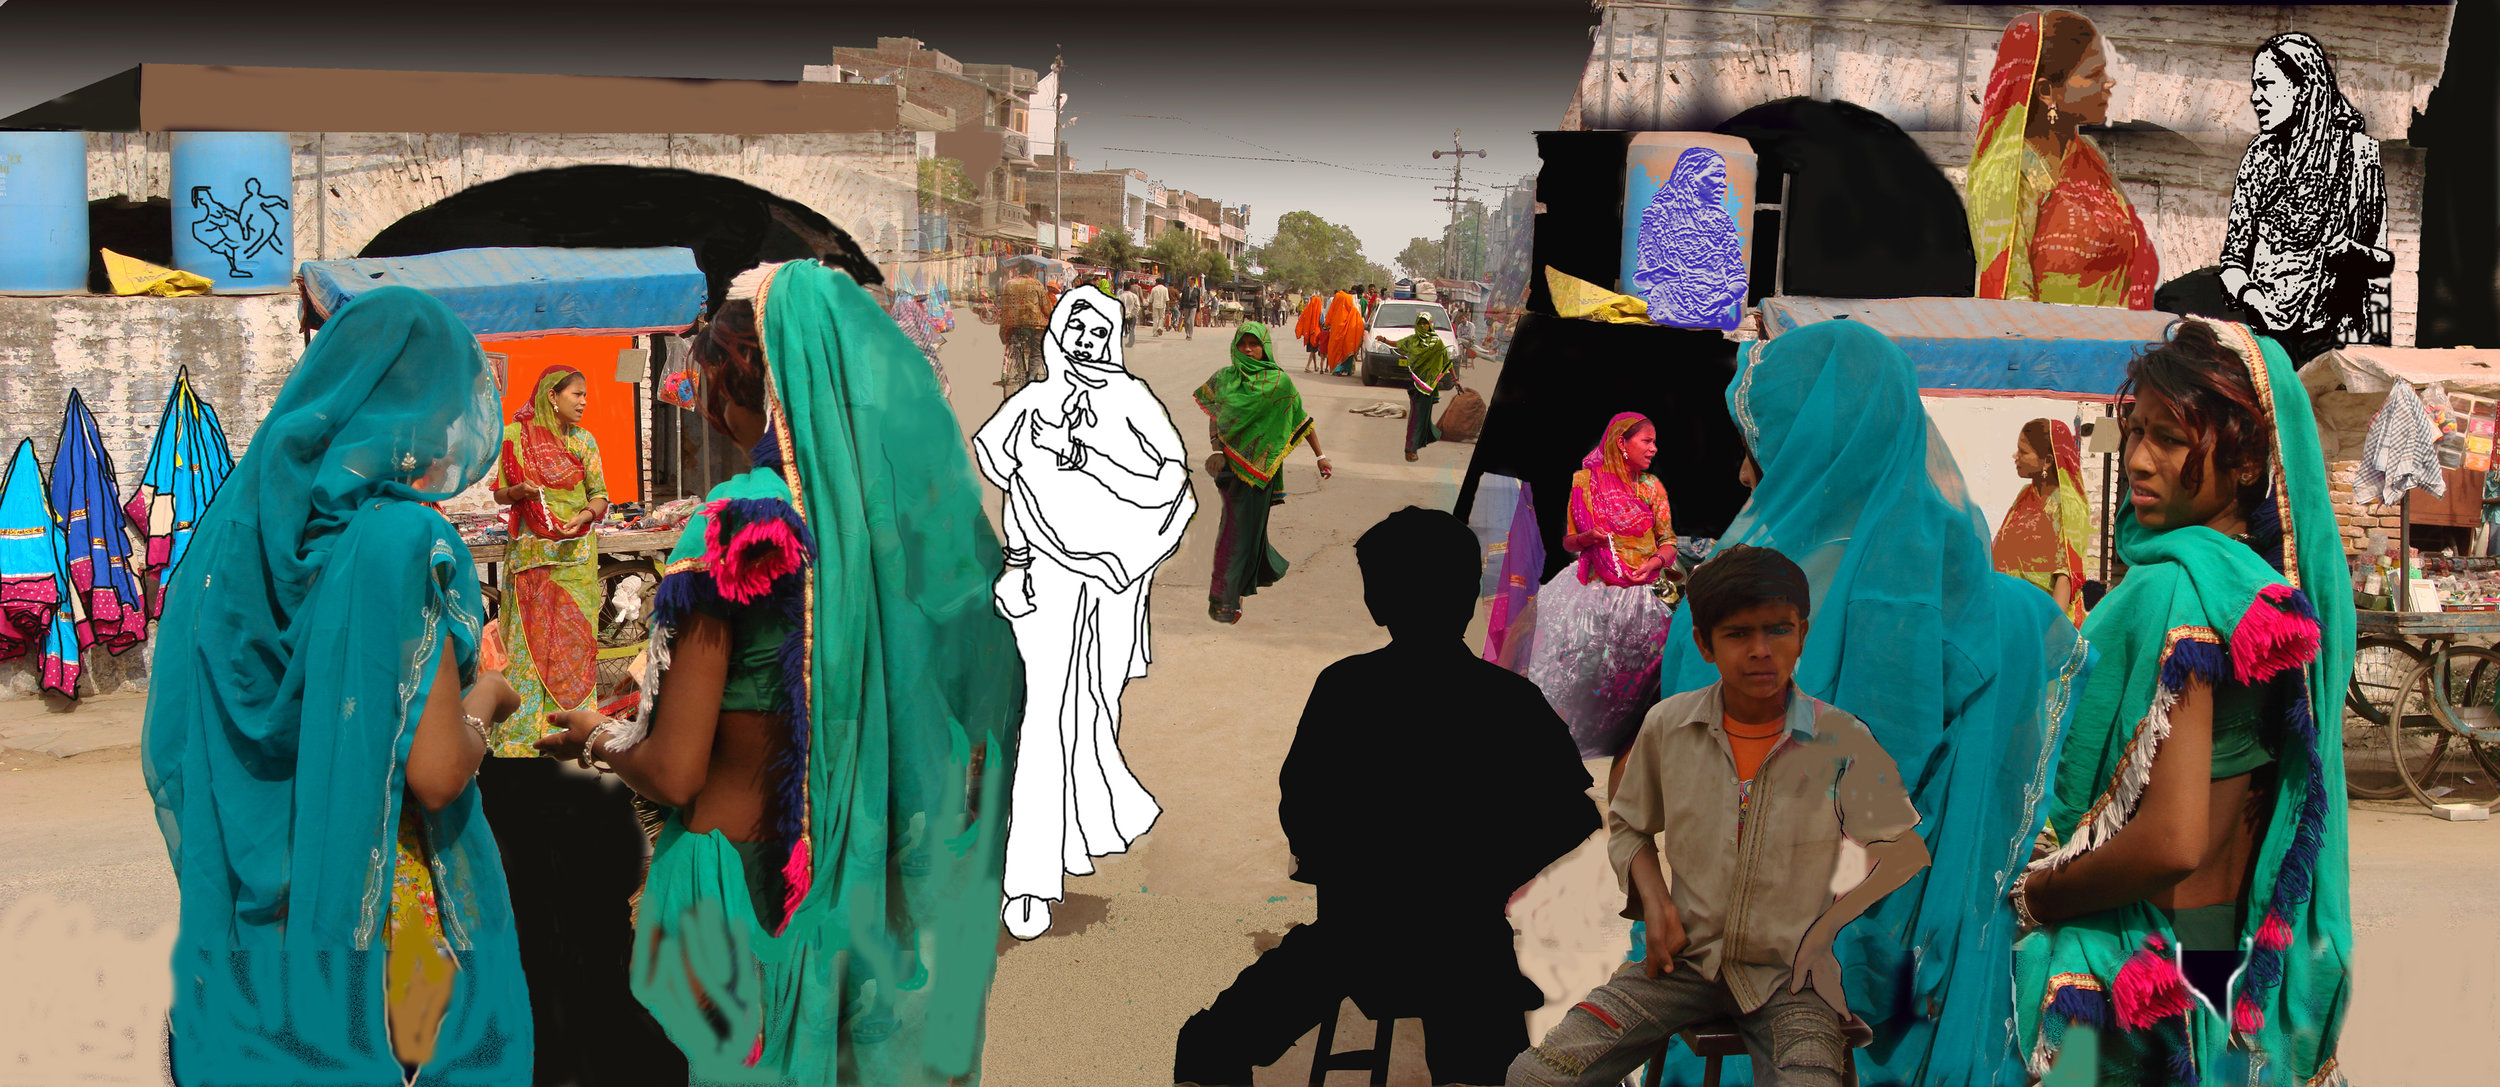 on the way to udaipur 20x46   09 jpg P Mansaram.jpg